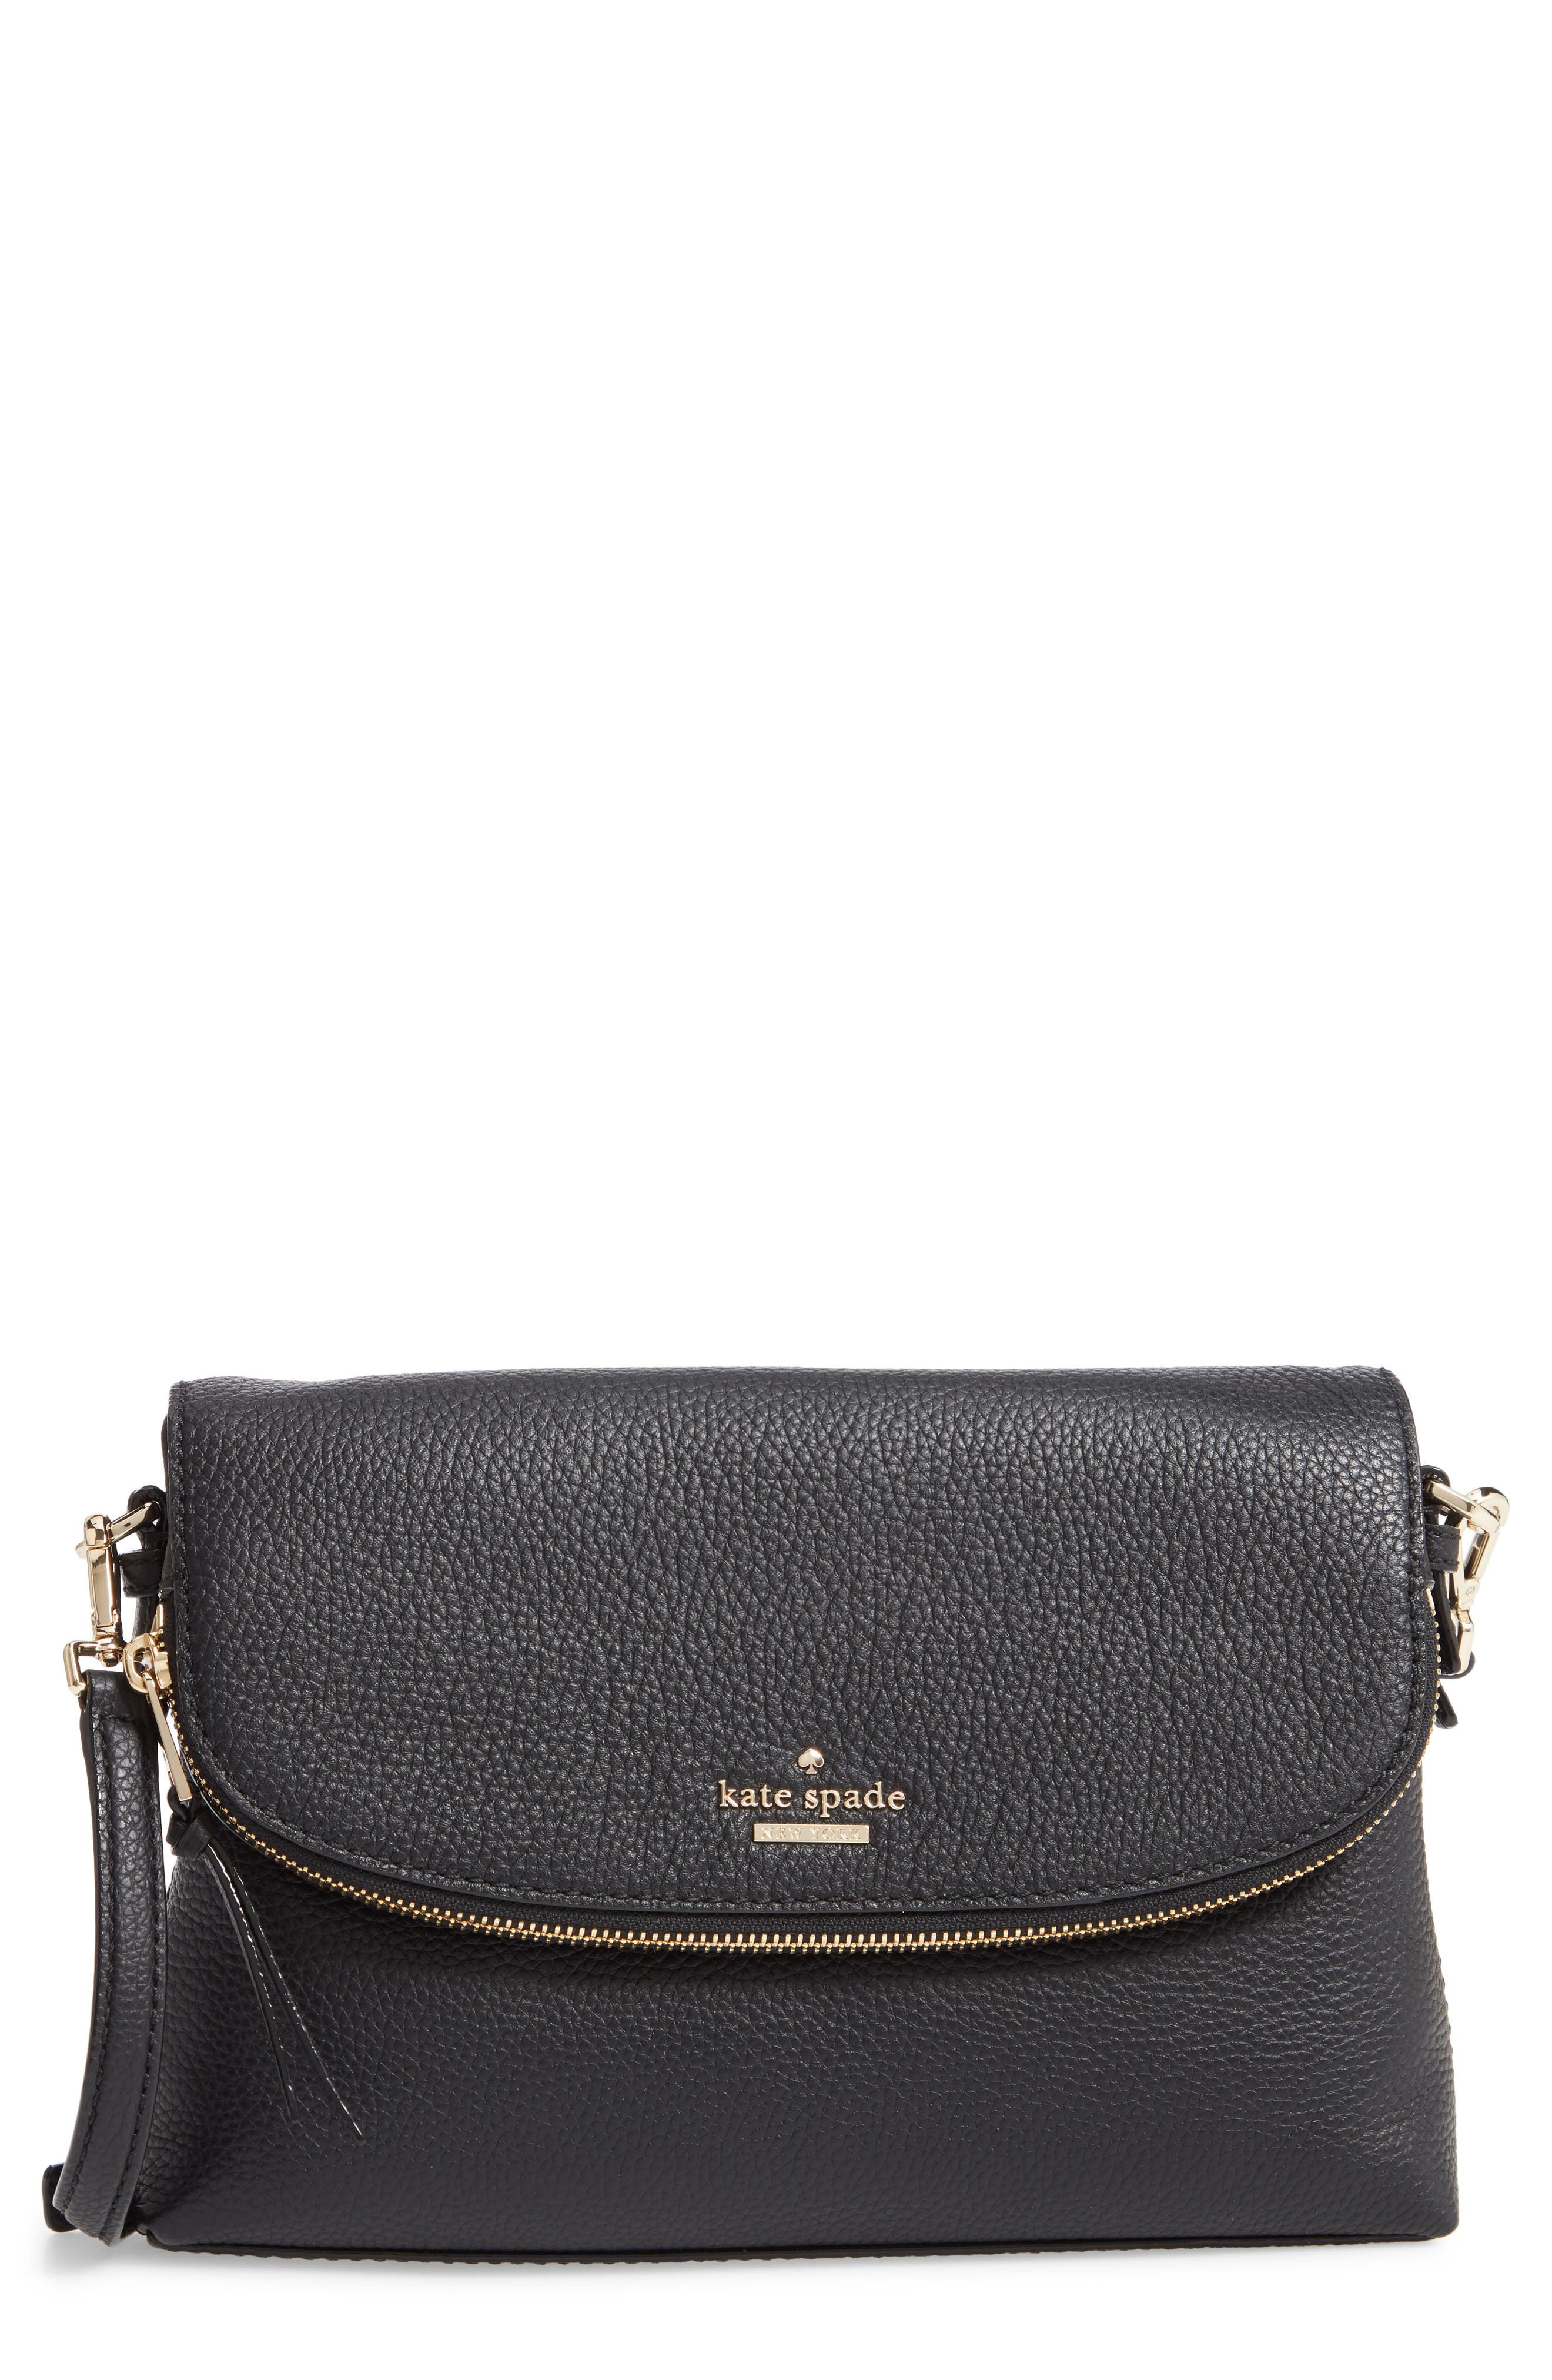 jackson street - harlyn leather crossbody bag,                             Main thumbnail 1, color,                             BLACK